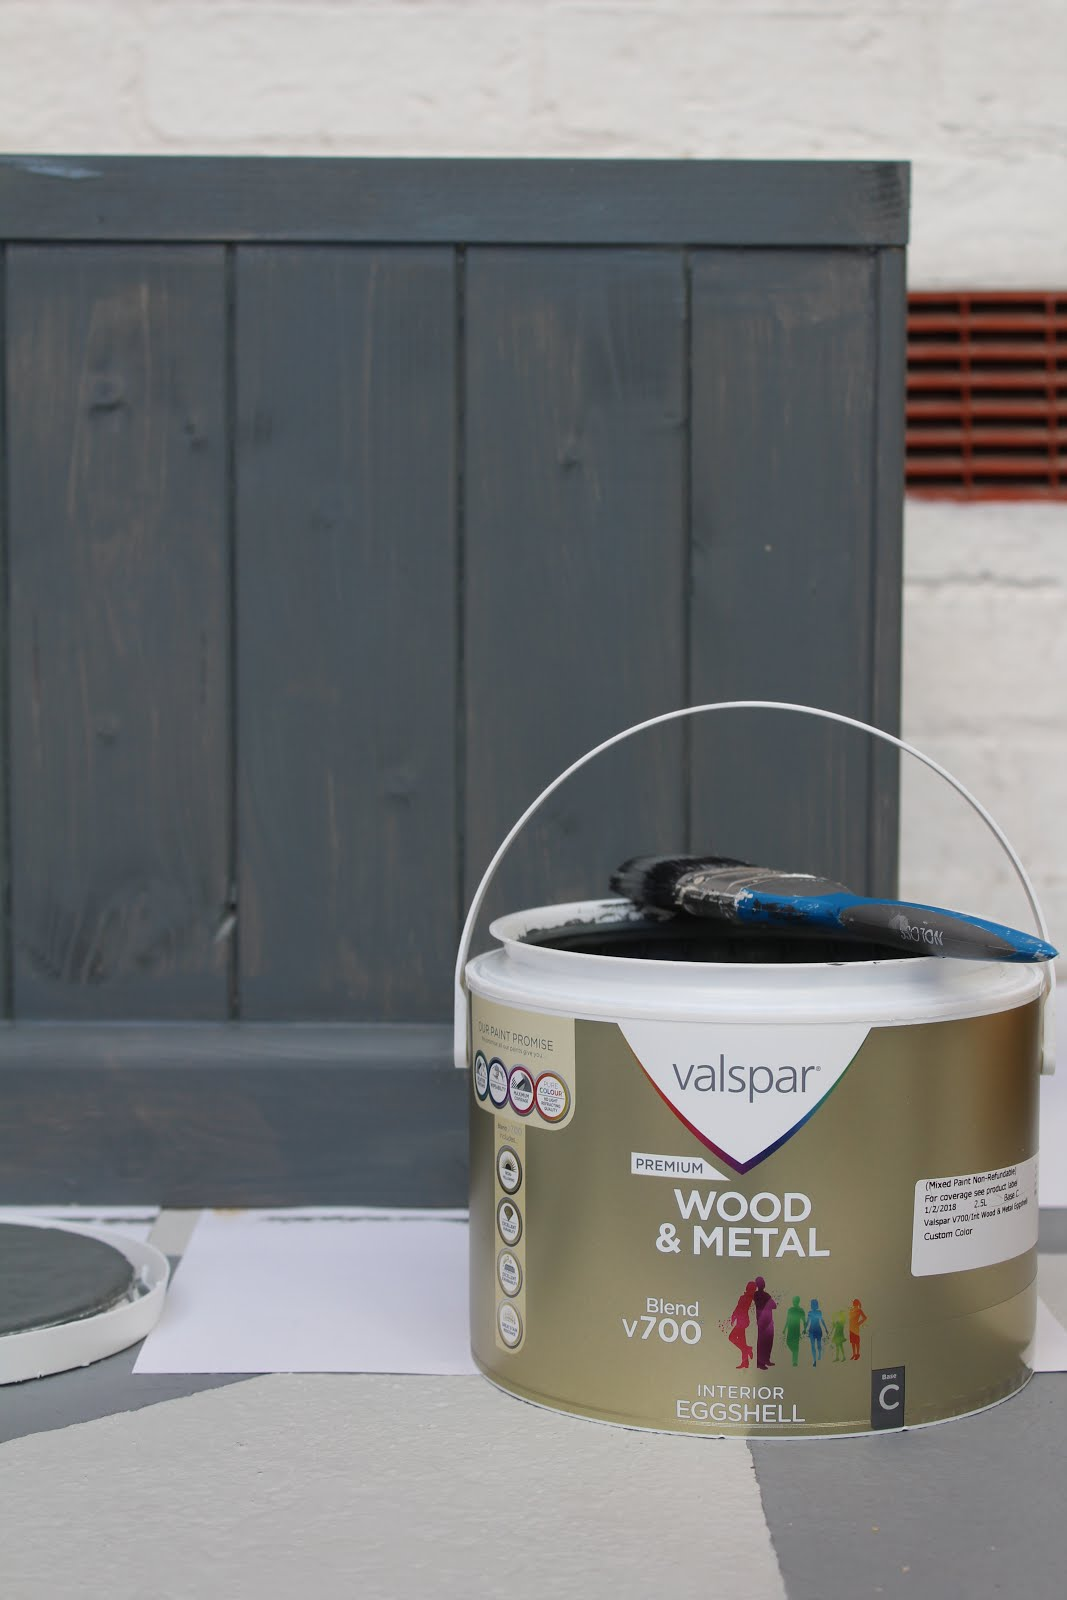 valspar wood and metal paint review